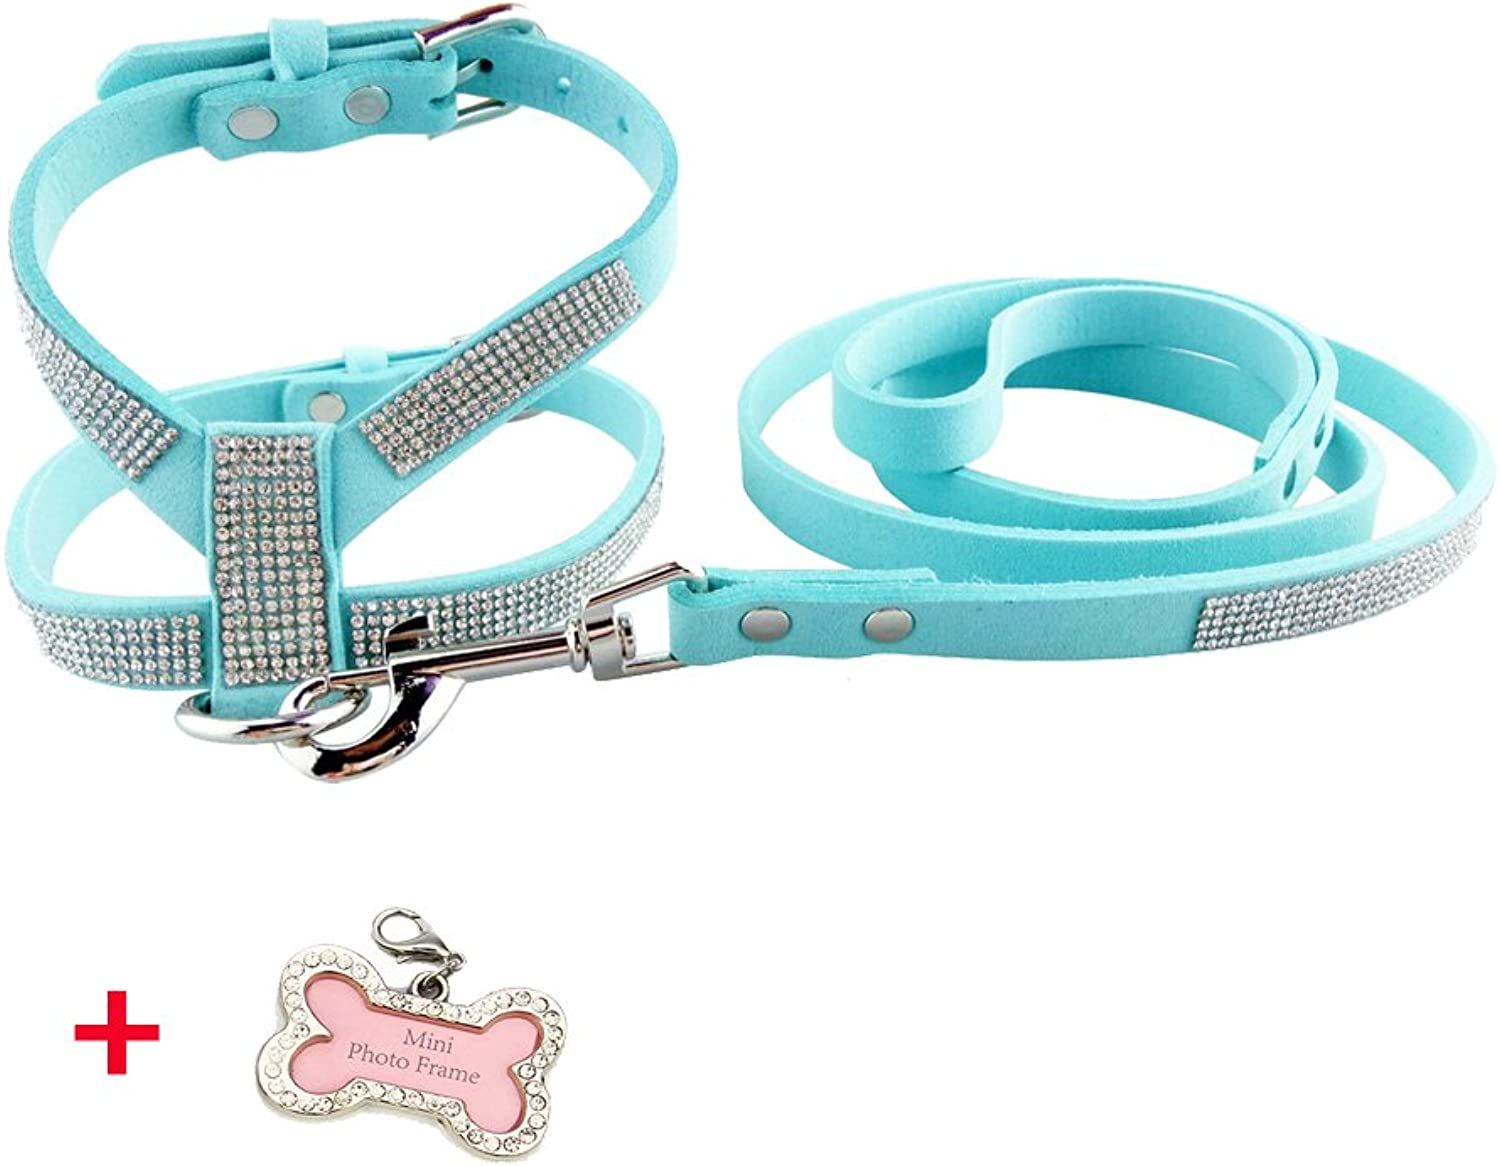 PETCARE Sparkly Rhinestone Dog Harness & Leash Set Soft PU Leather Shining Diamonds Pet Collar Harnesses for Small Medium Dogs (M(Adjustable Chest 13 16  Neck 8.6 11 ), bluee)